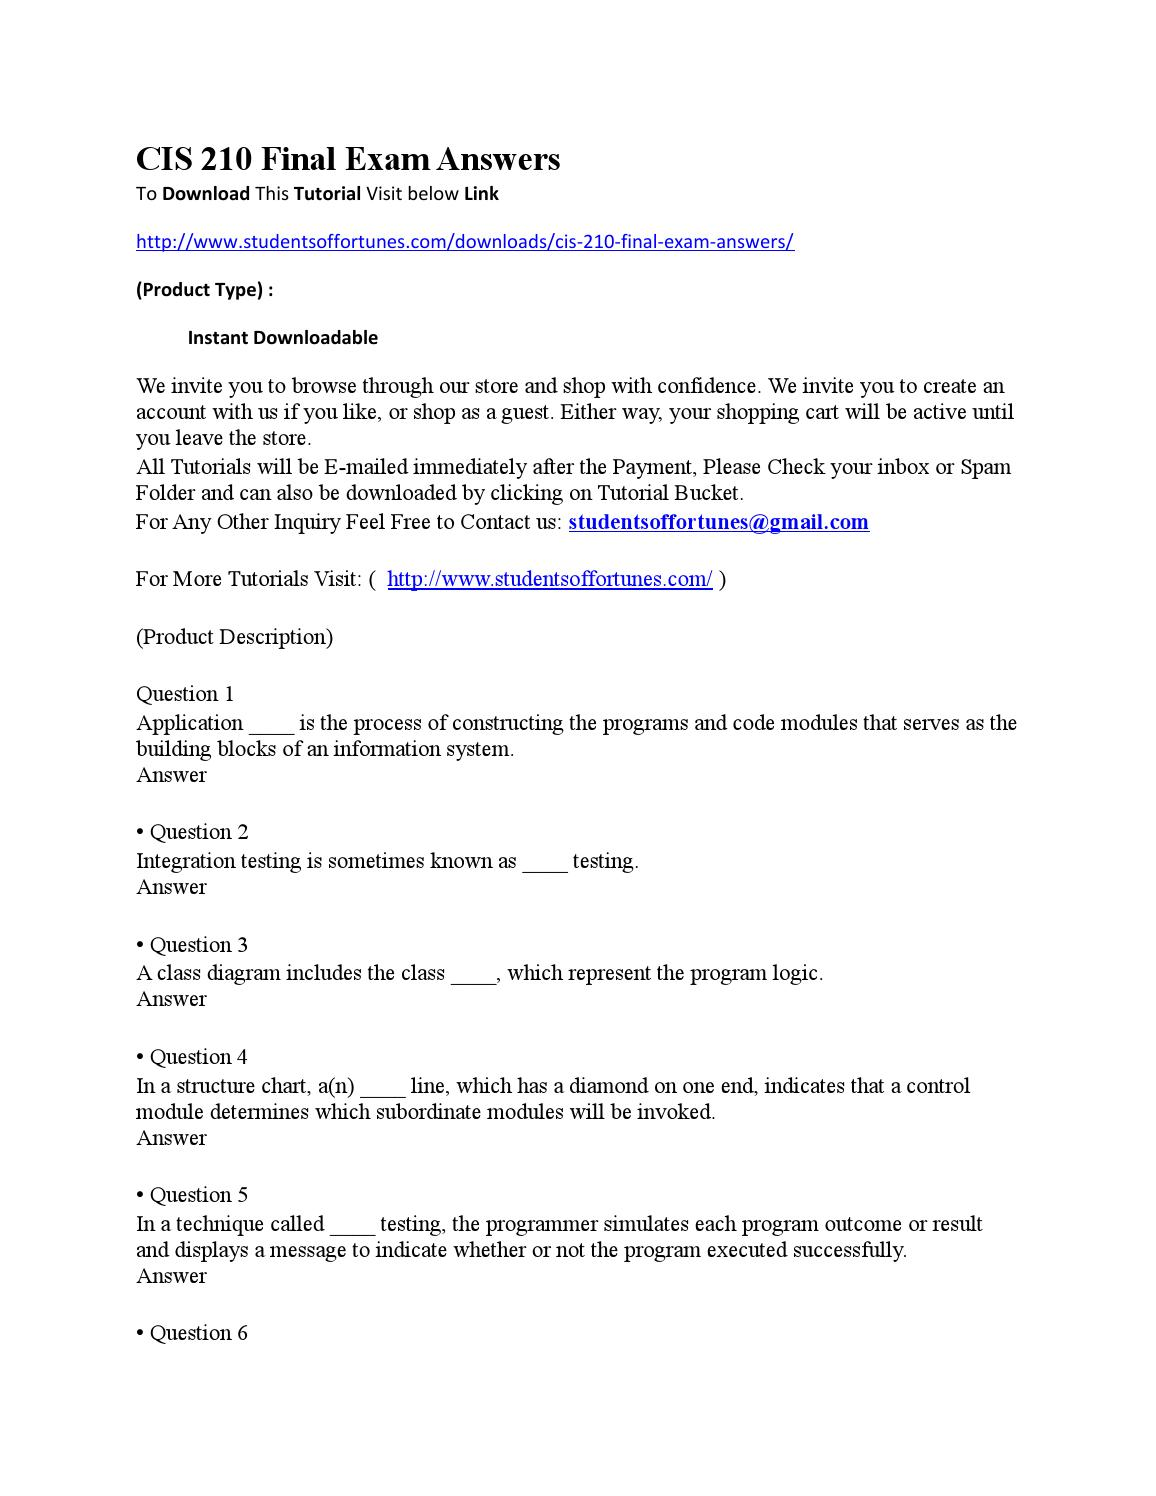 Cis 210 final exam answers by online homework help issuu ccuart